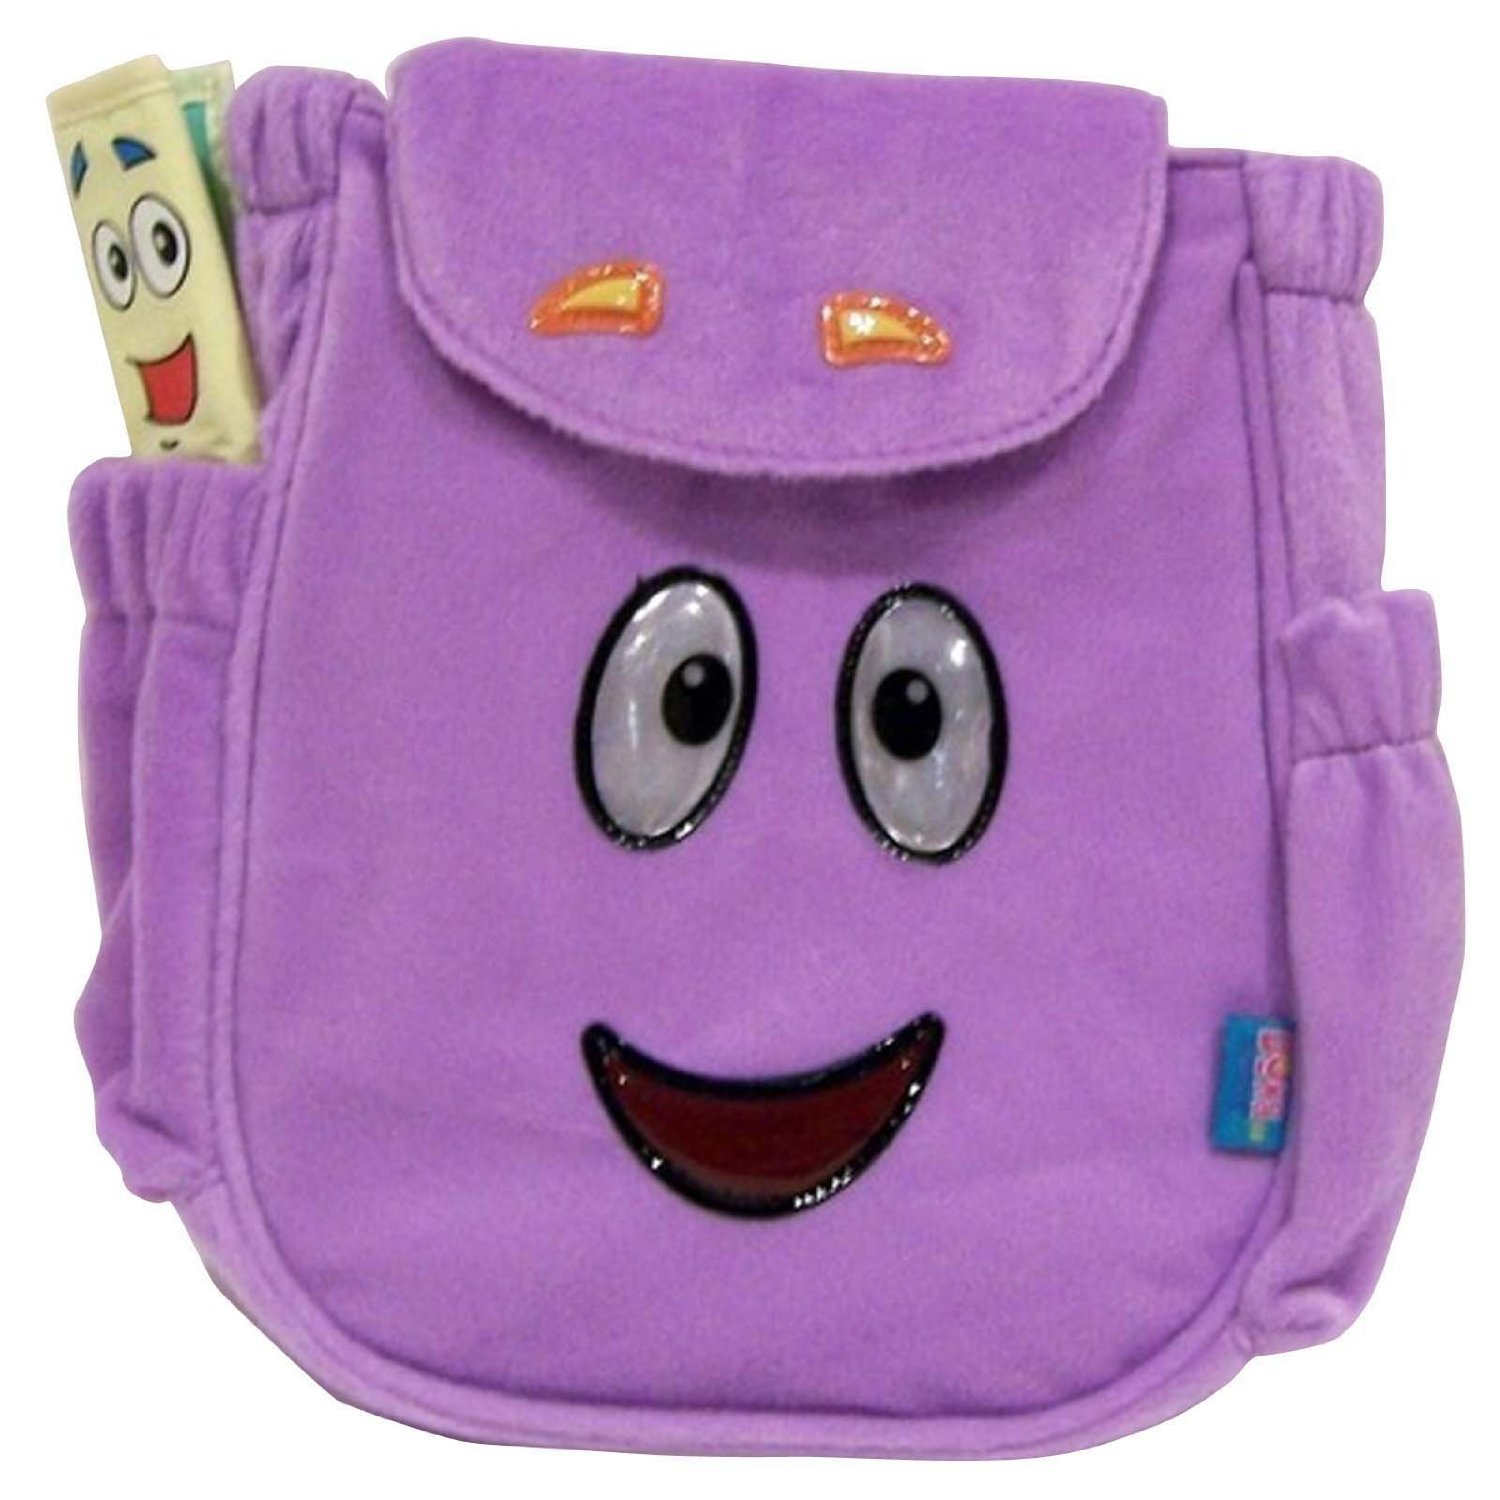 Plush Backpack - Dora the Explorer - Mr.Face Rescue Bag New Soft Toys 235795-2   B003630FC6